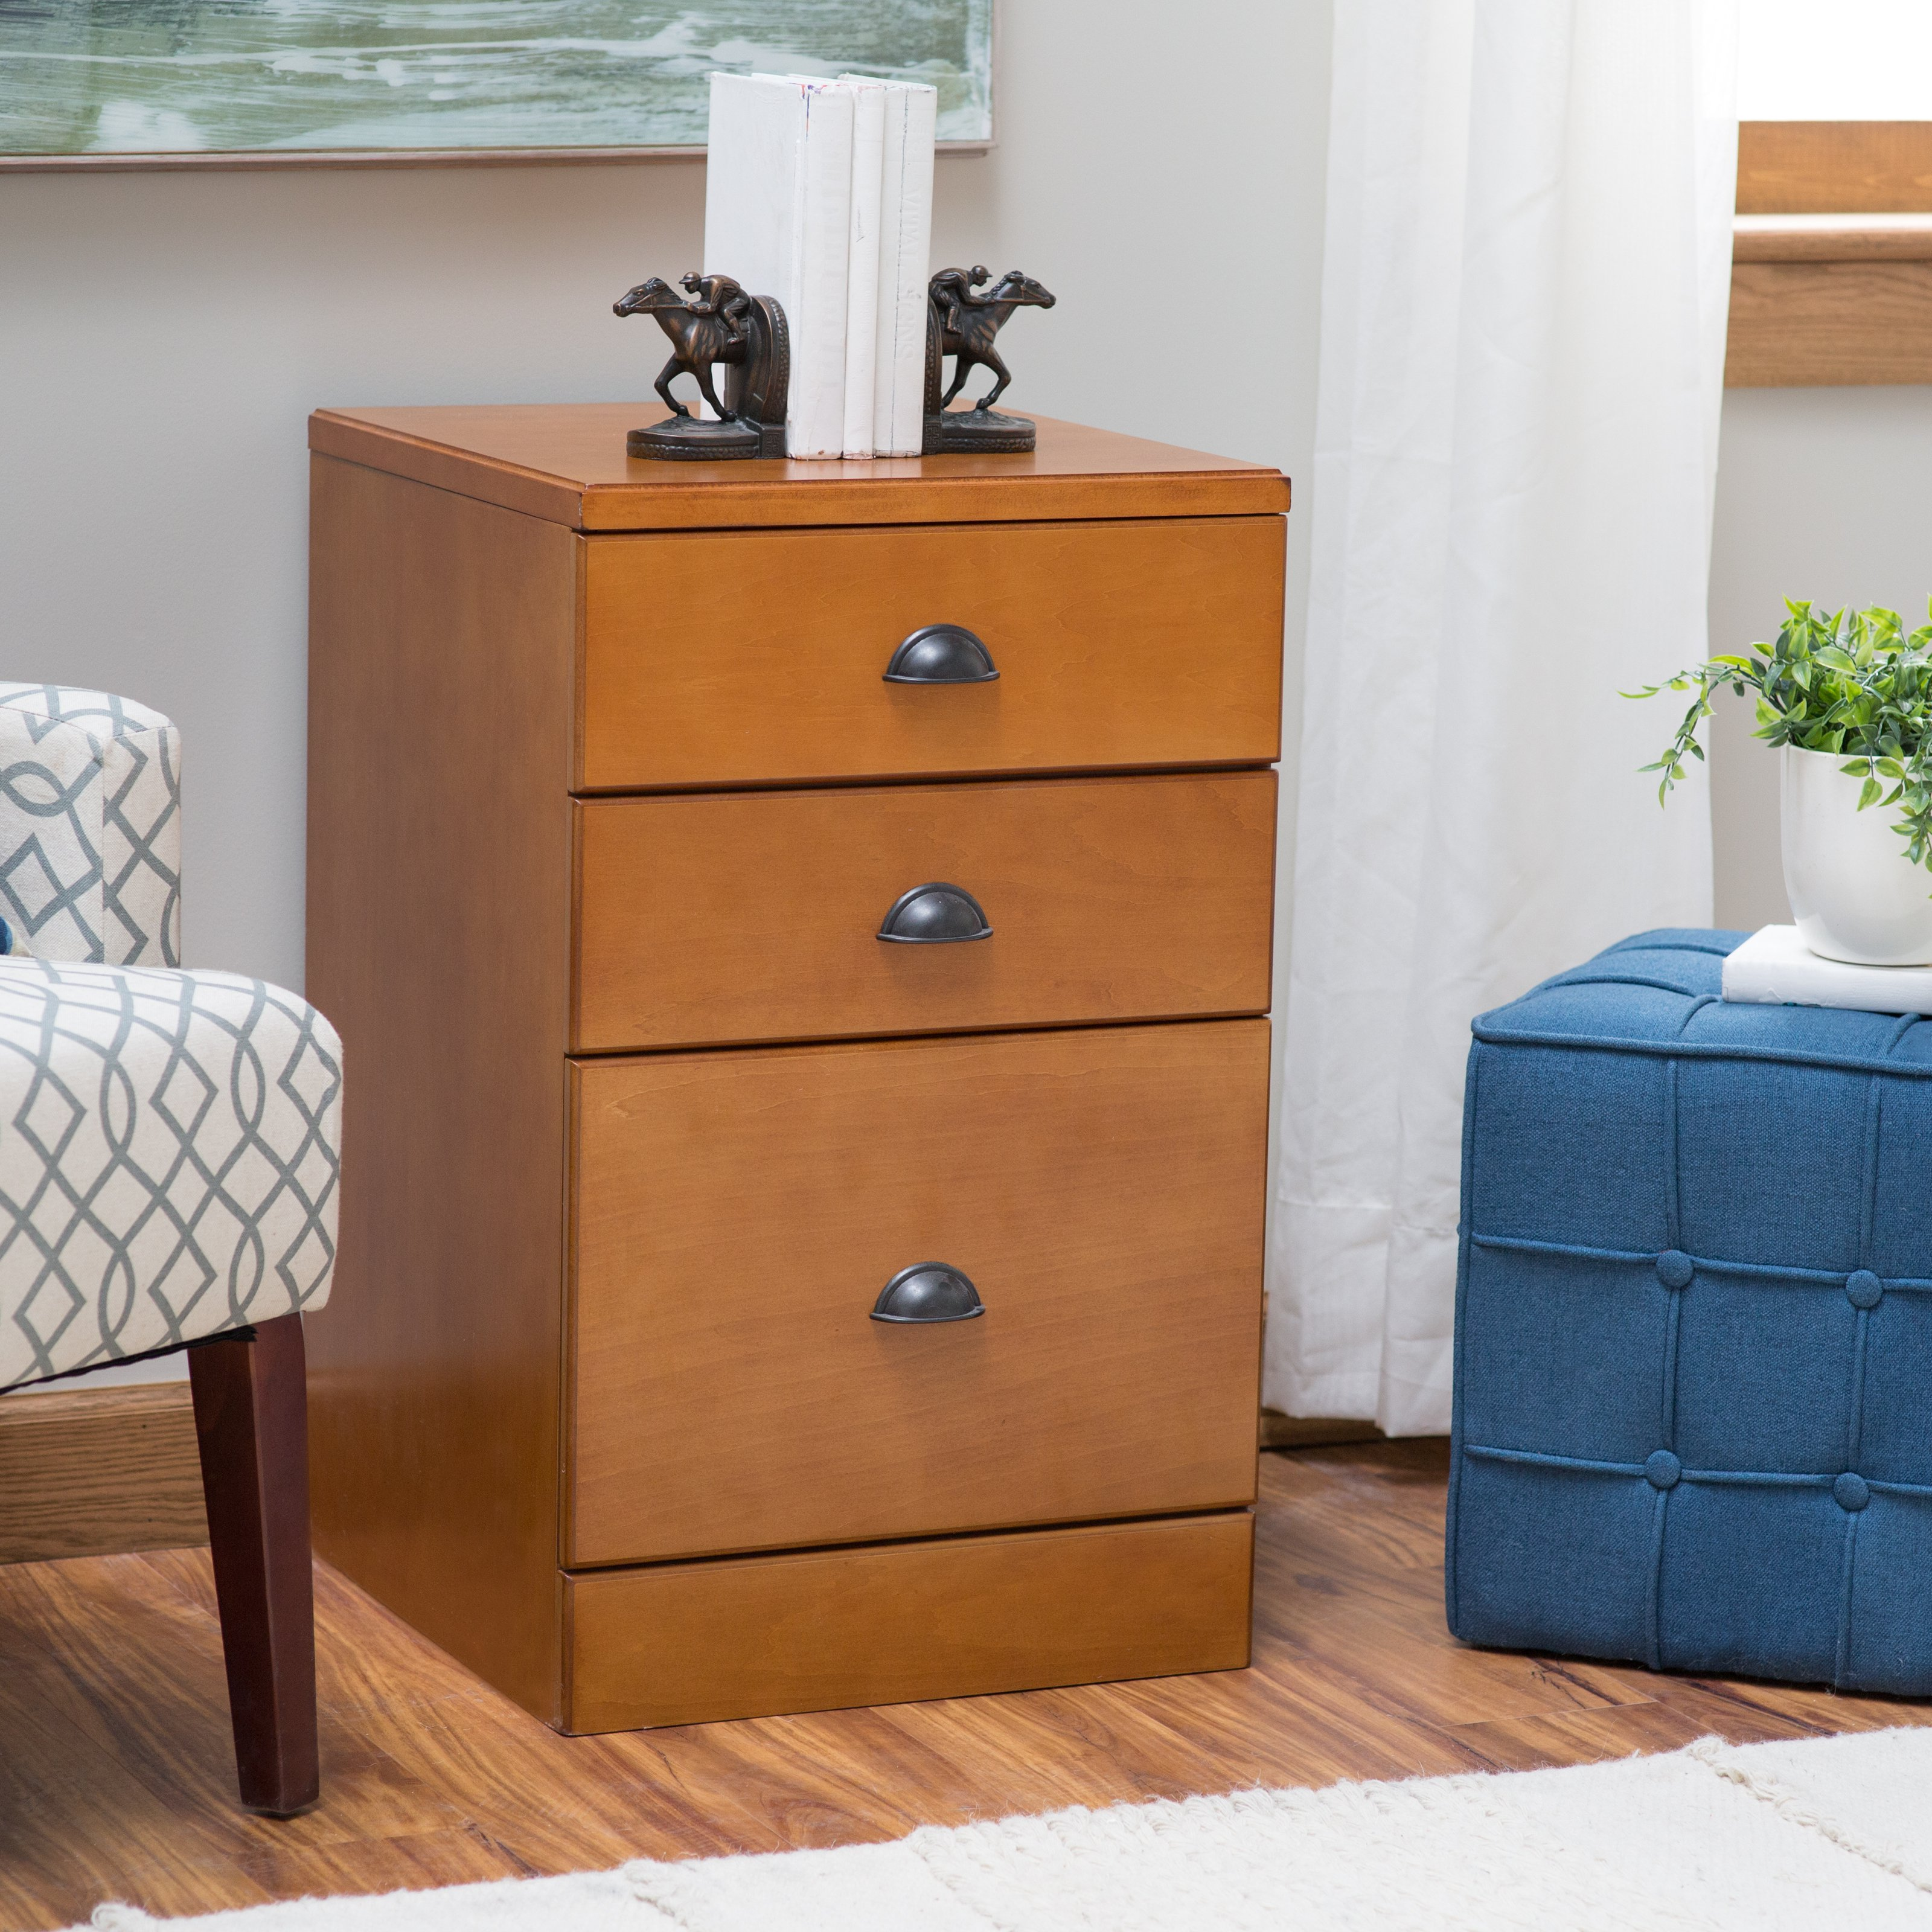 delightful accent table file cabinet round color tables living room kijiji printer top wall bedsid painting decor mini console outdoor gold lamps side ide diy target tiffany